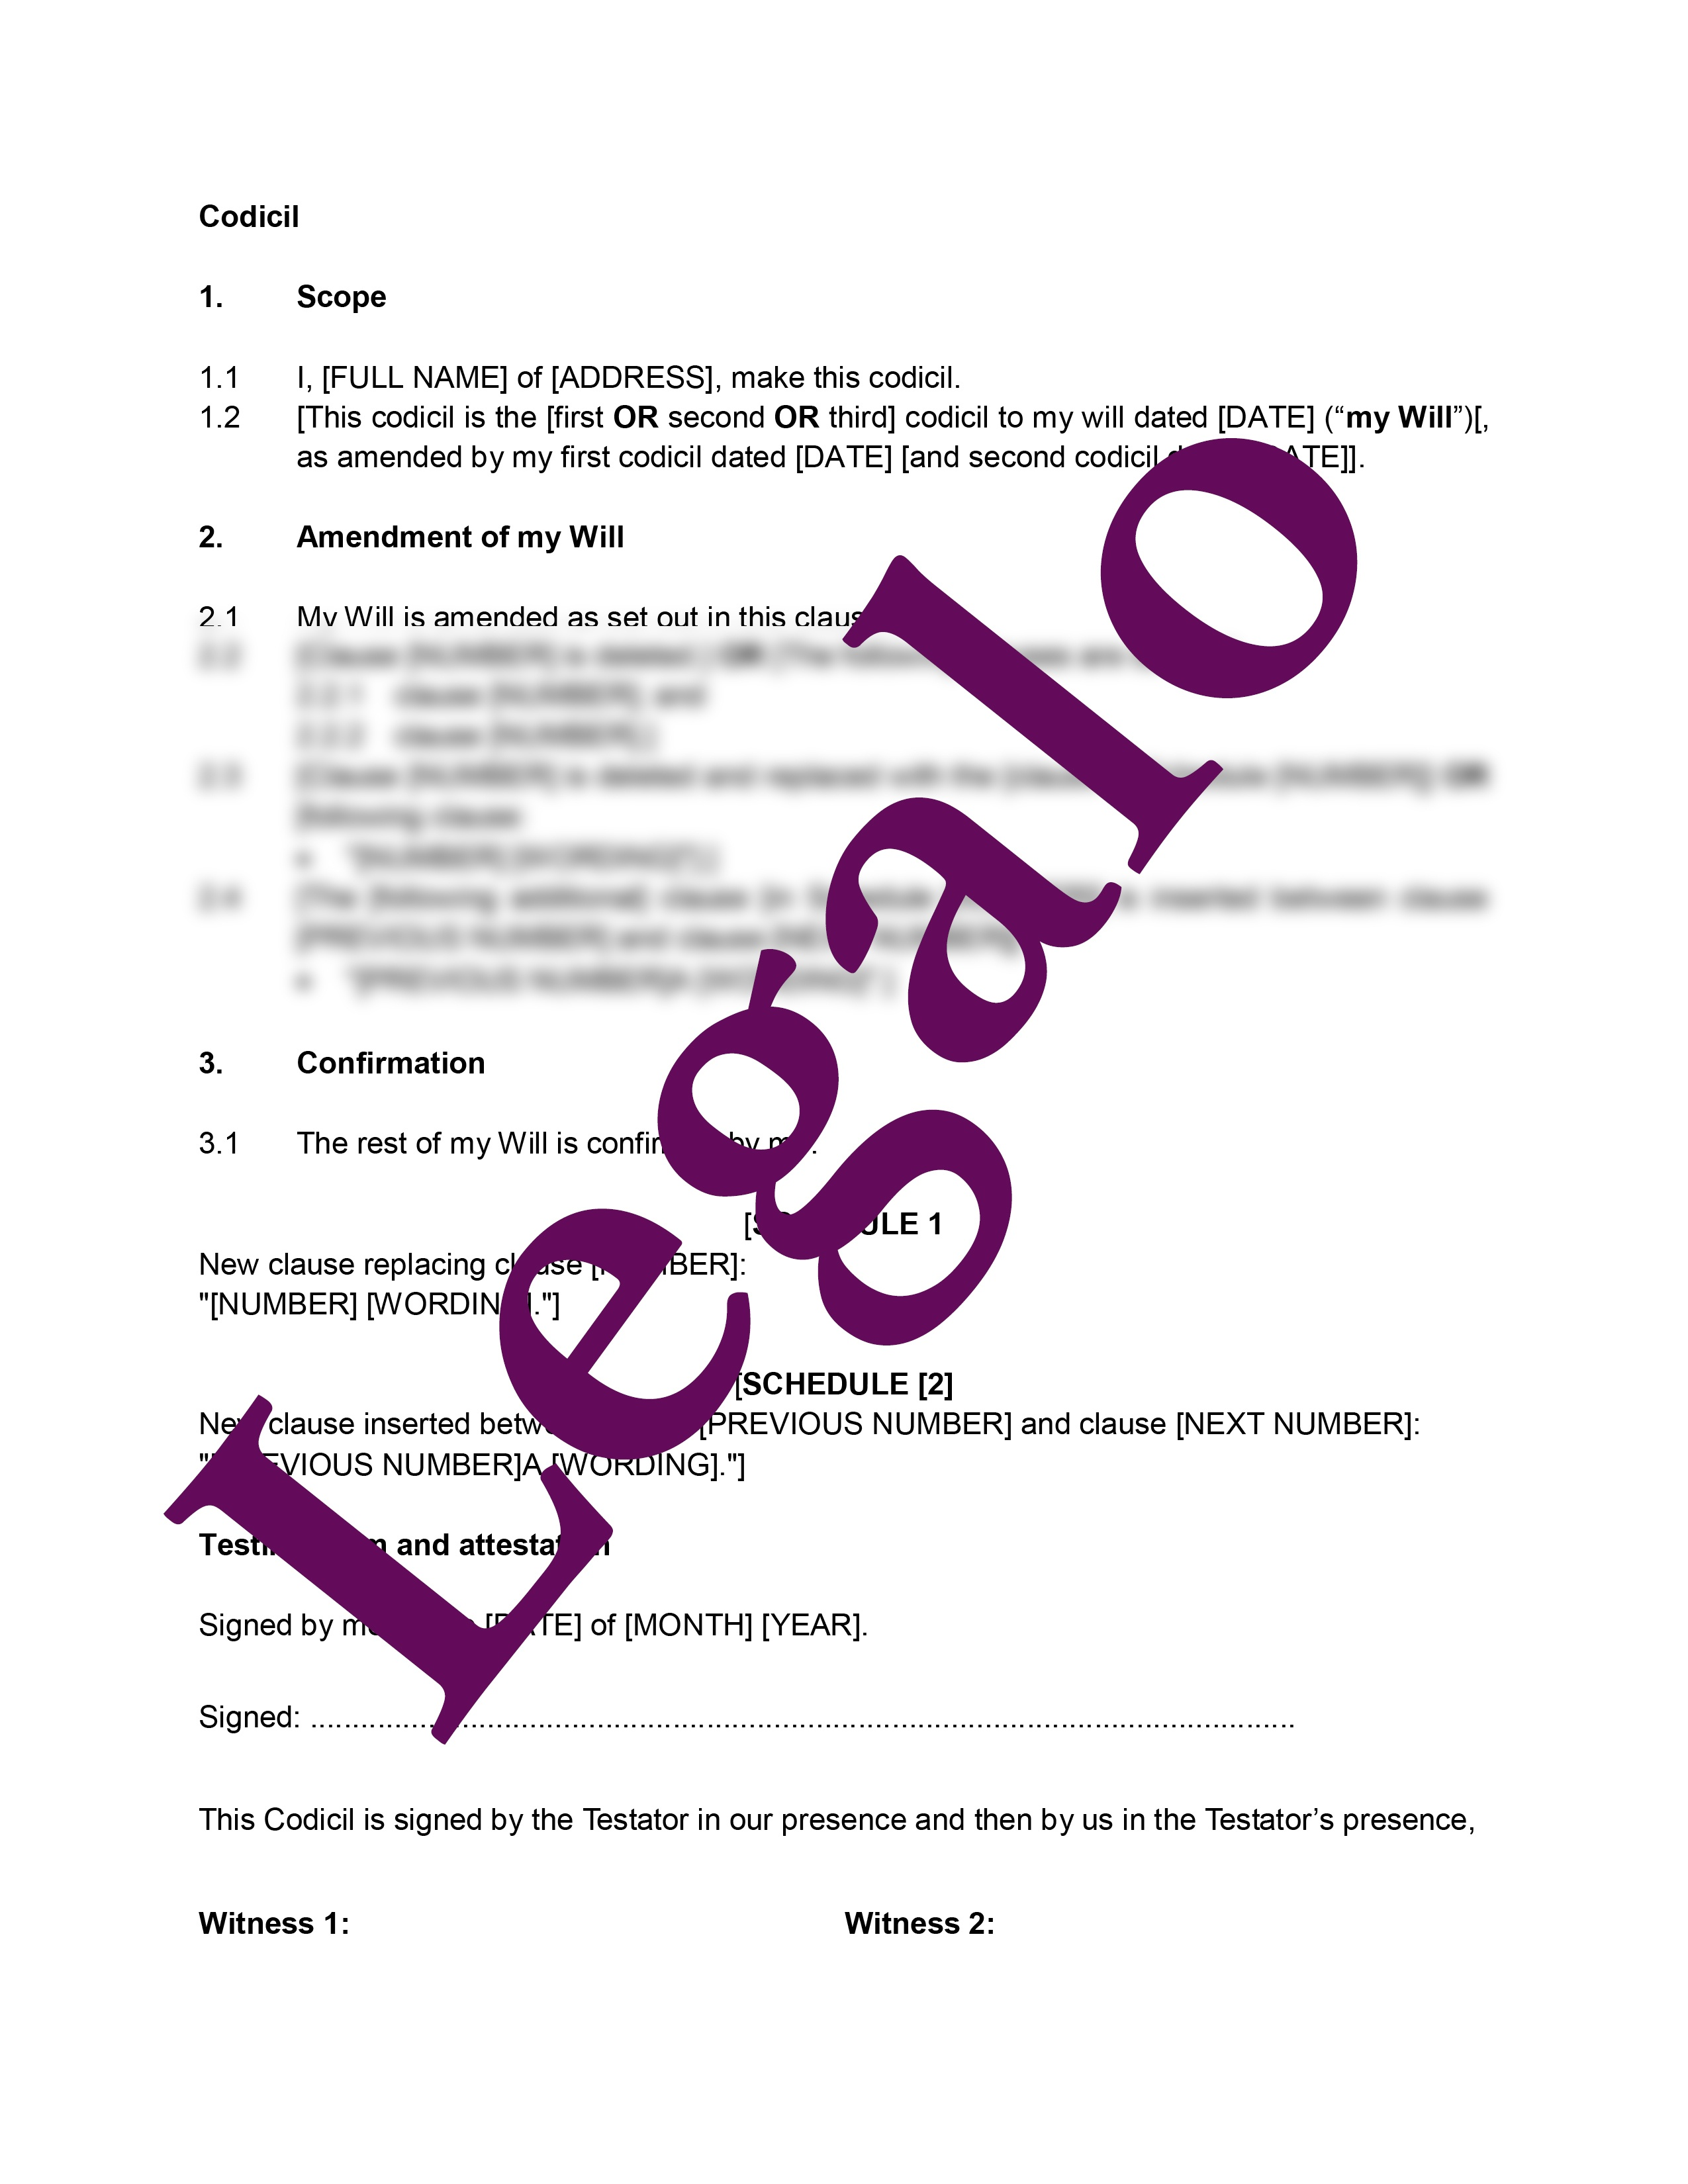 Codicil Template - Use This Template Form To Vary Your Will - Legalo - Free Printable Codicil Form